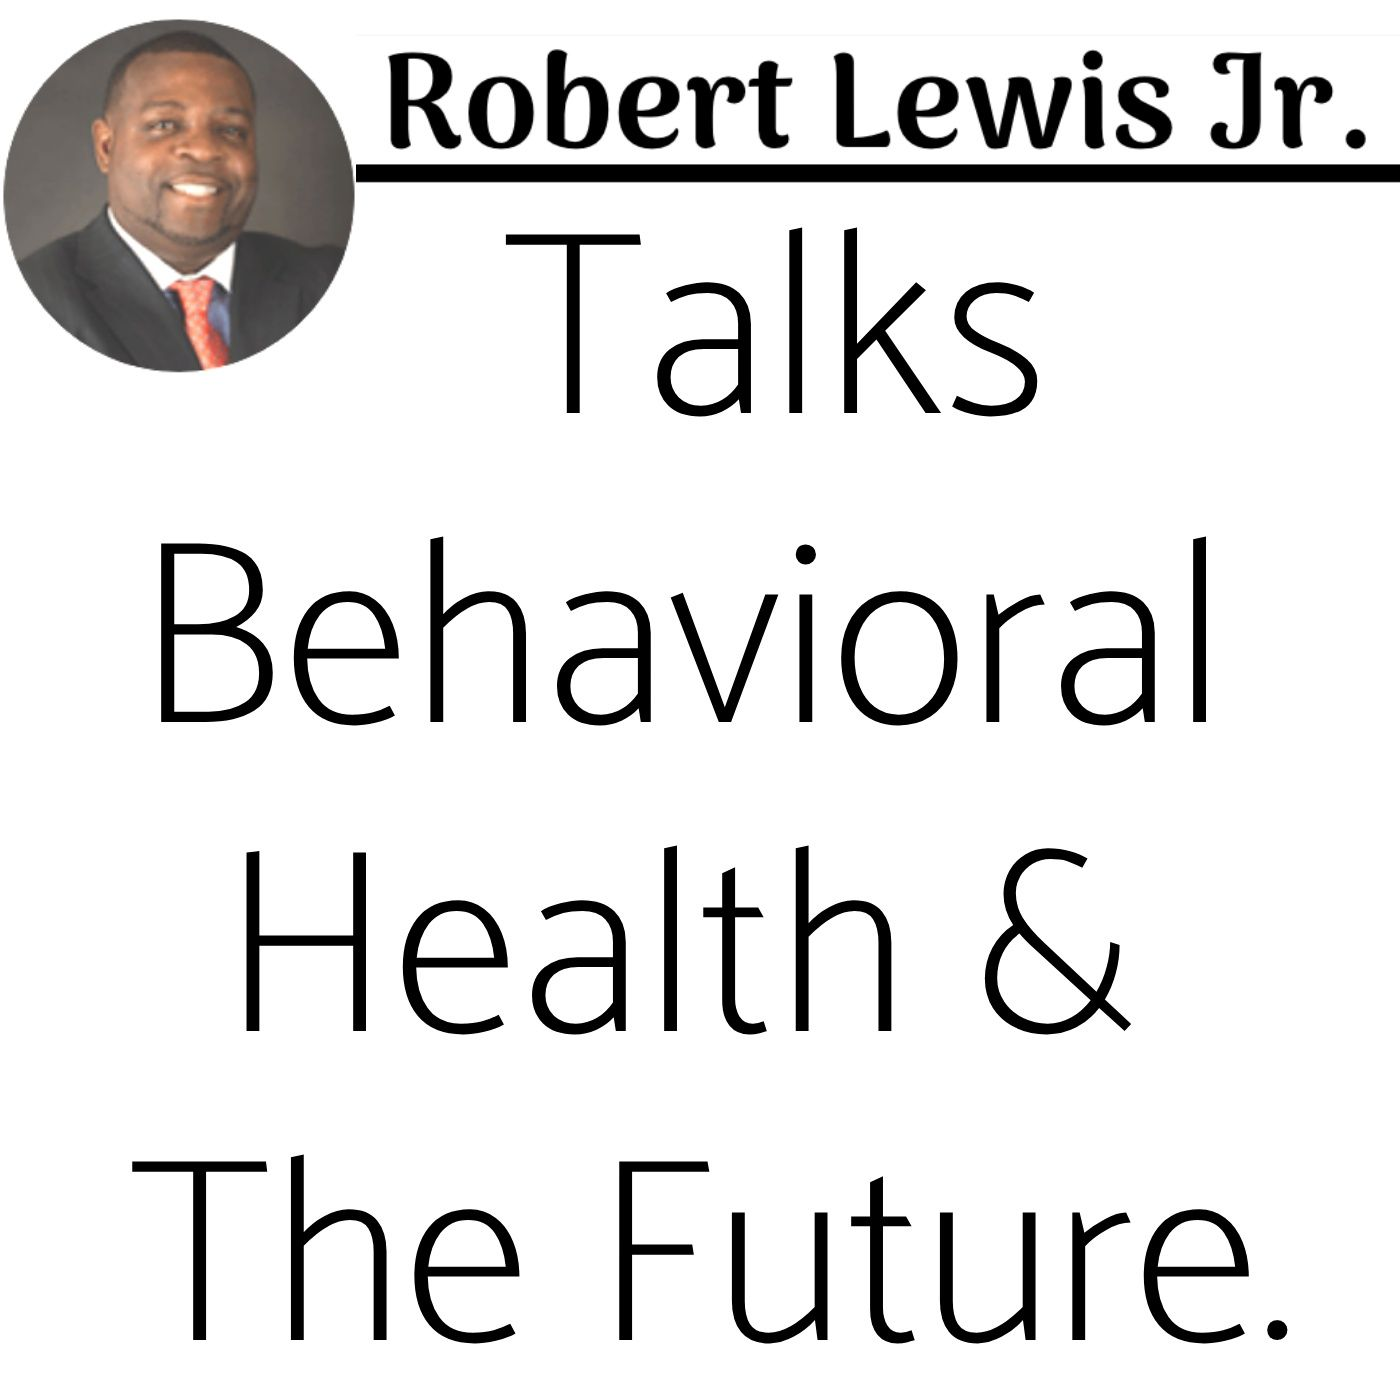 Episode 60: Part 3 of 3 - Robert Lewis Jr. Talks Behavioral Health & The Future.